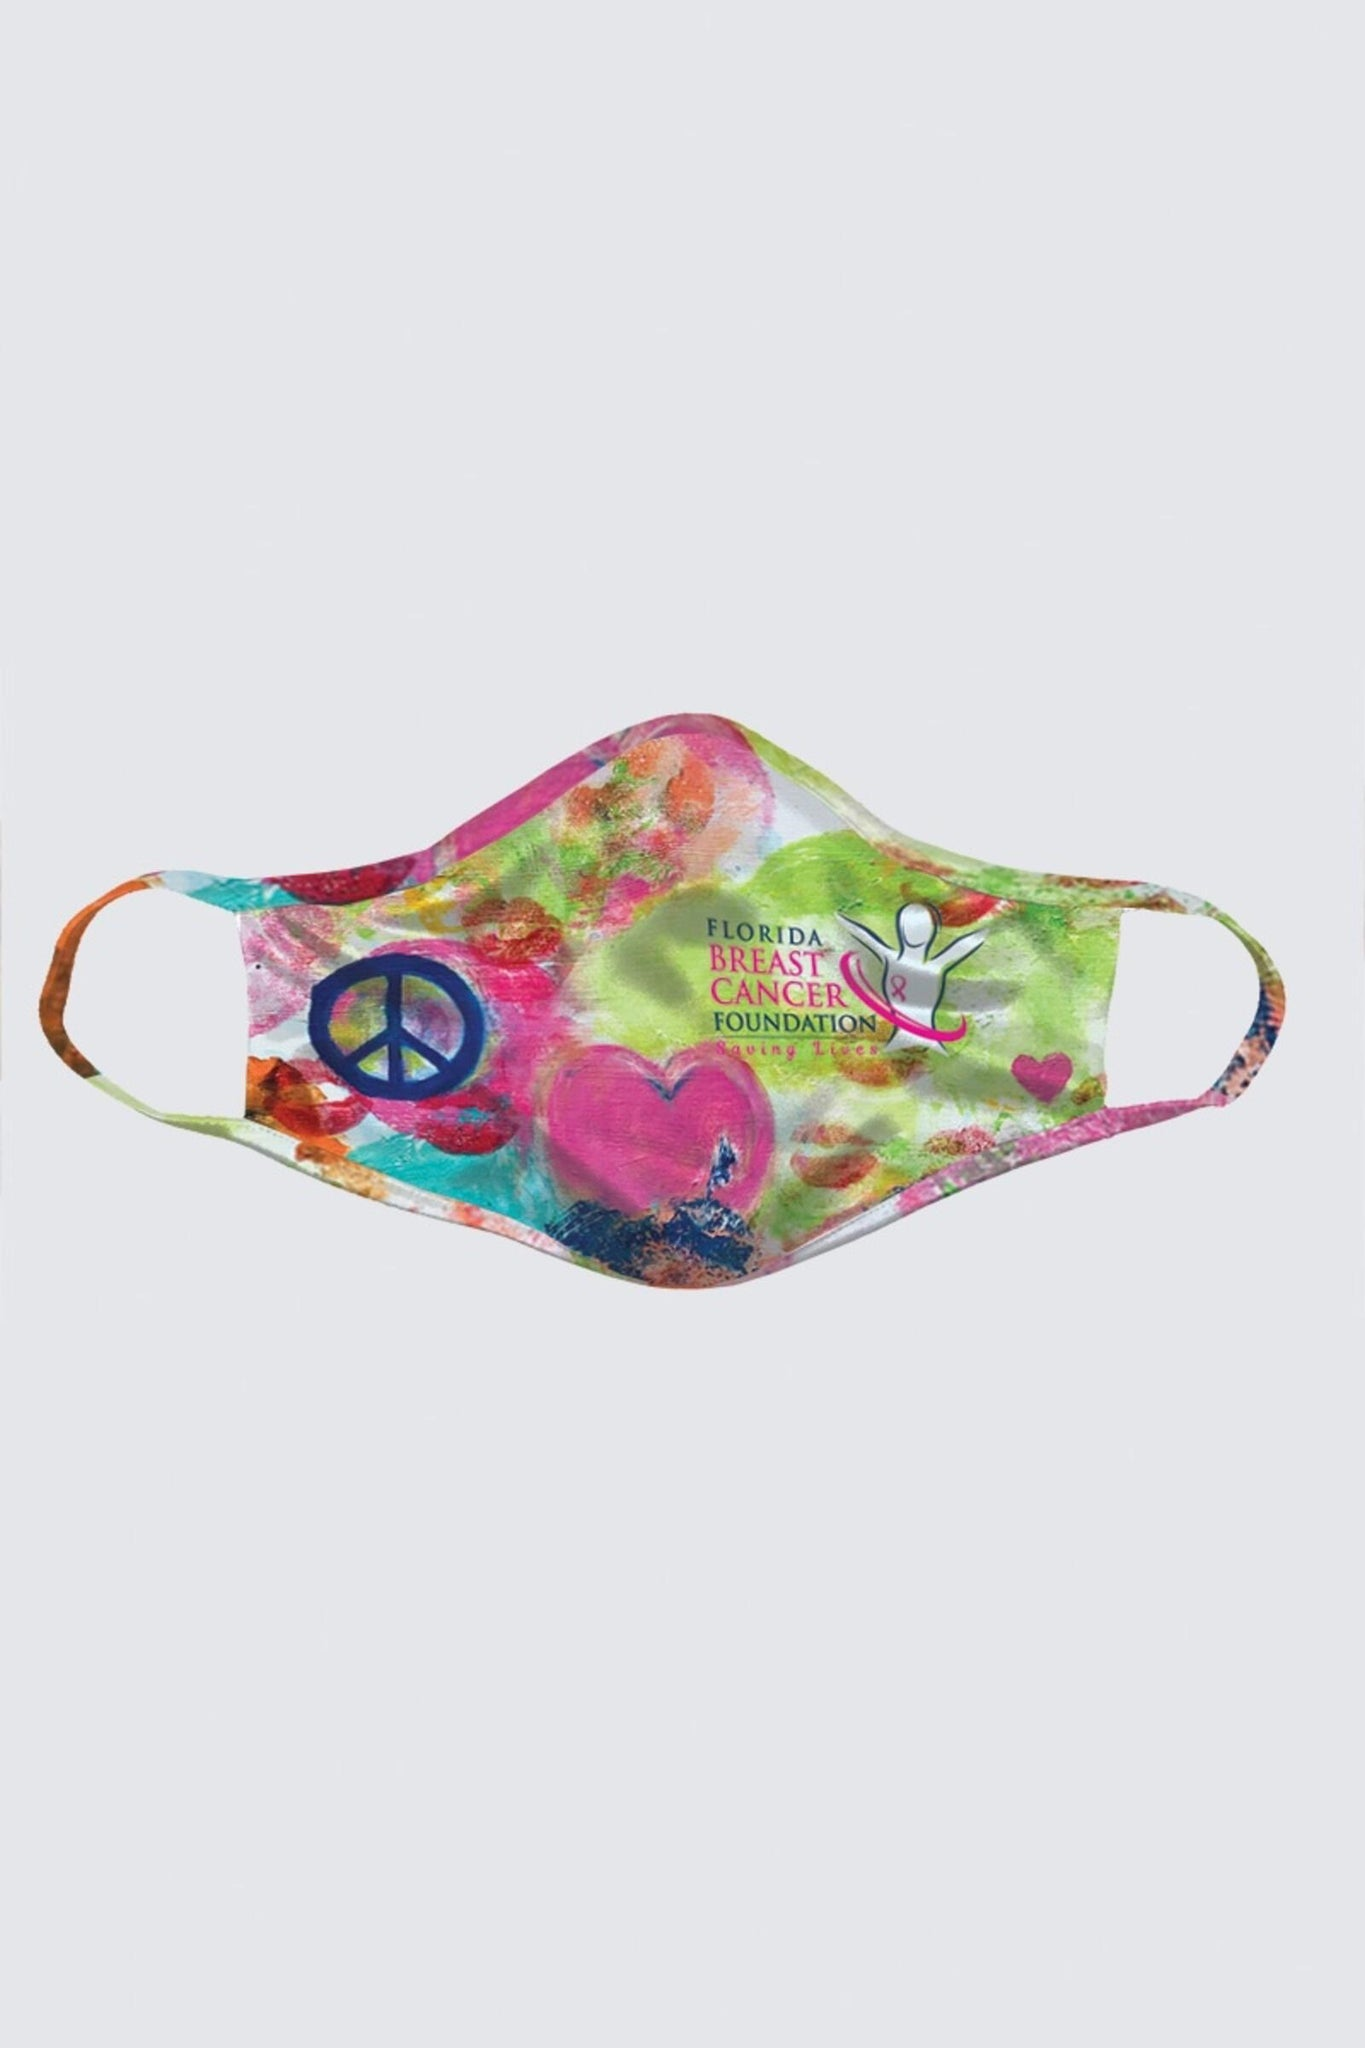 Washable face mask, Florida Breast Cancer Foundation